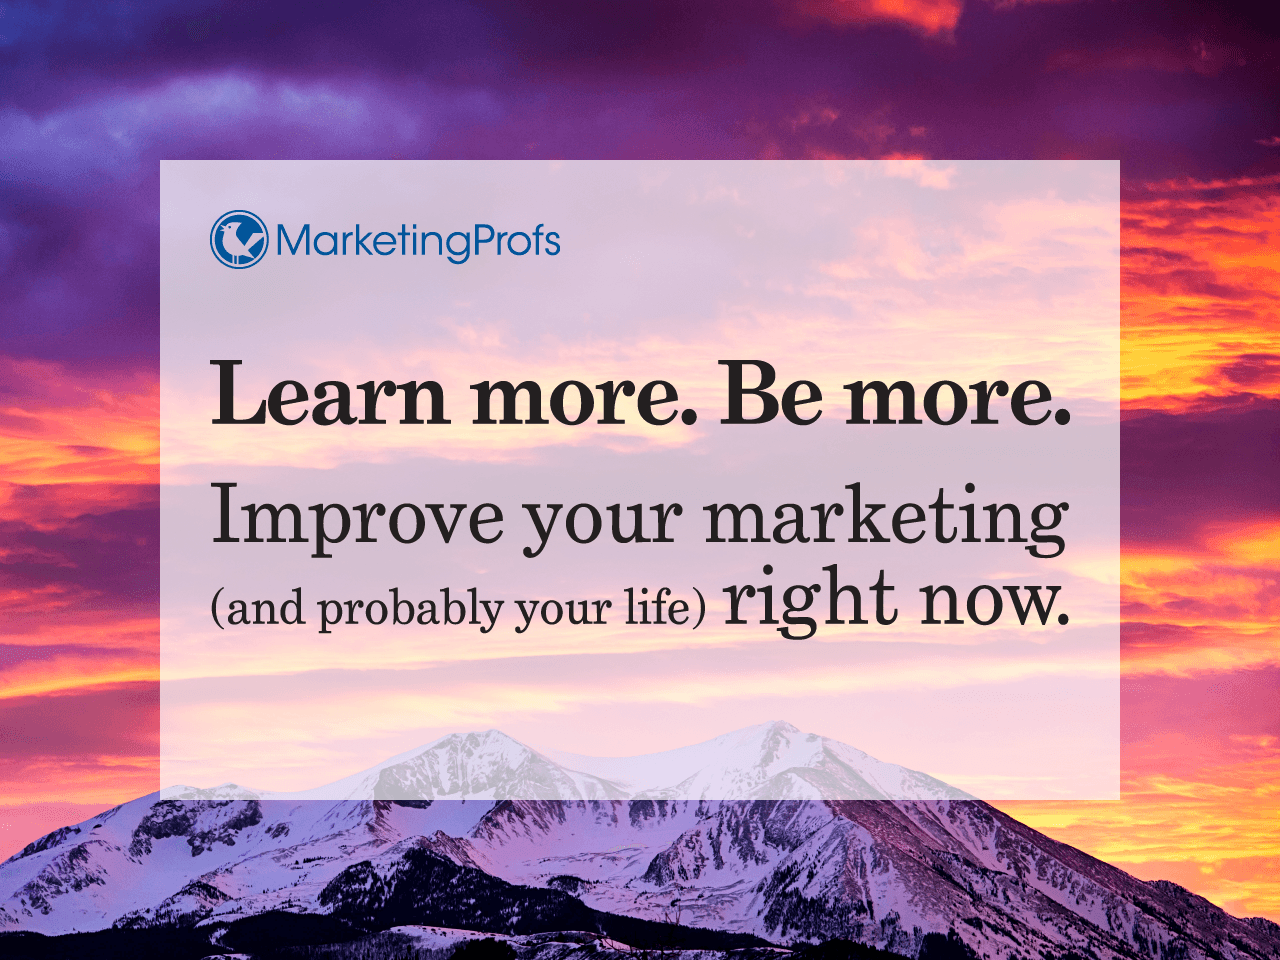 MarketingProfs | Learn more. Be More. Improve your marketing right now.